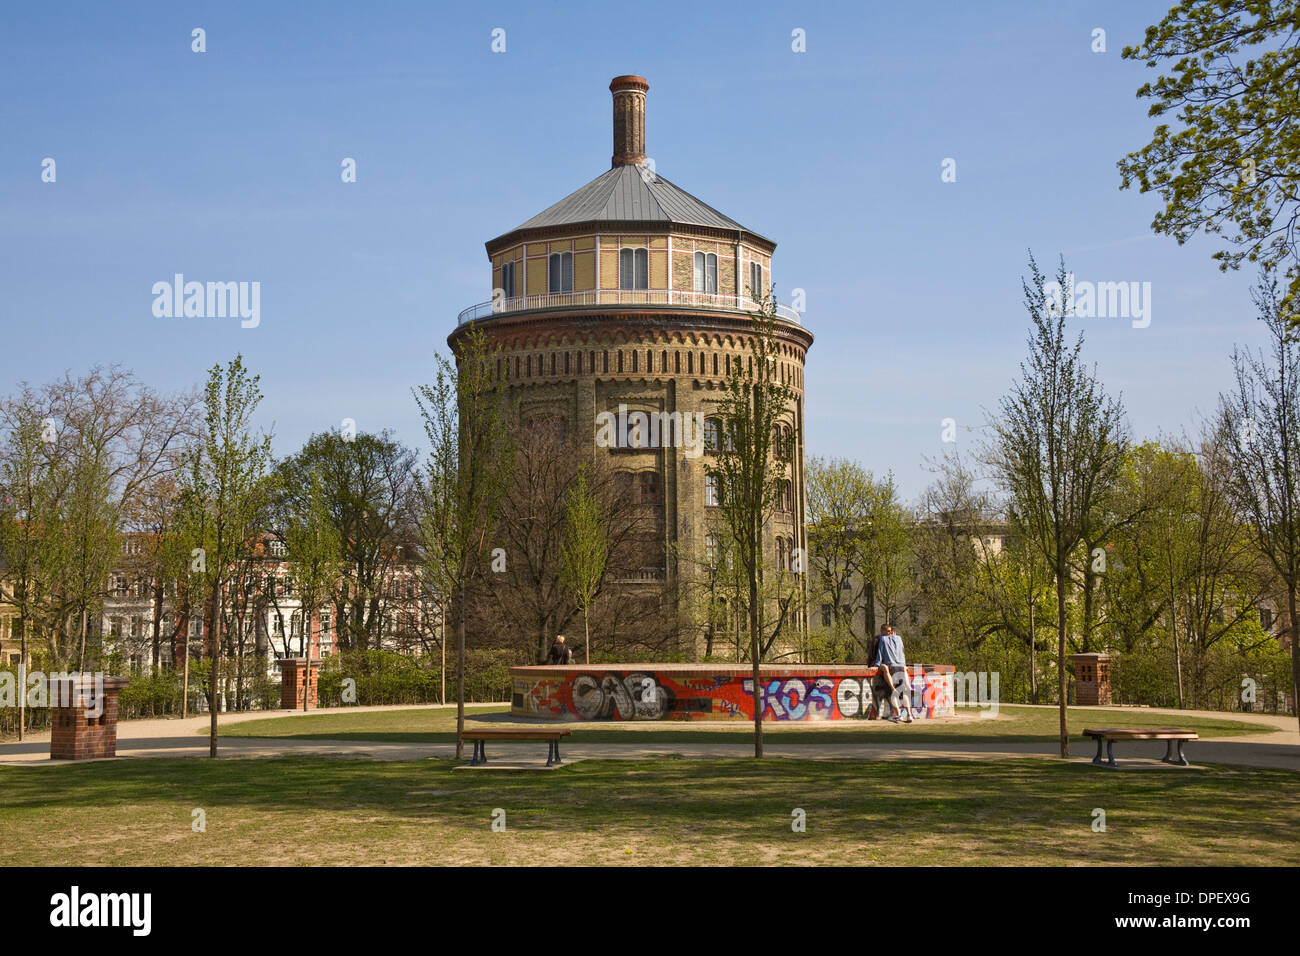 prenzlauer berg water tower pankow berlin germany stock photo royalty free image 65481516. Black Bedroom Furniture Sets. Home Design Ideas